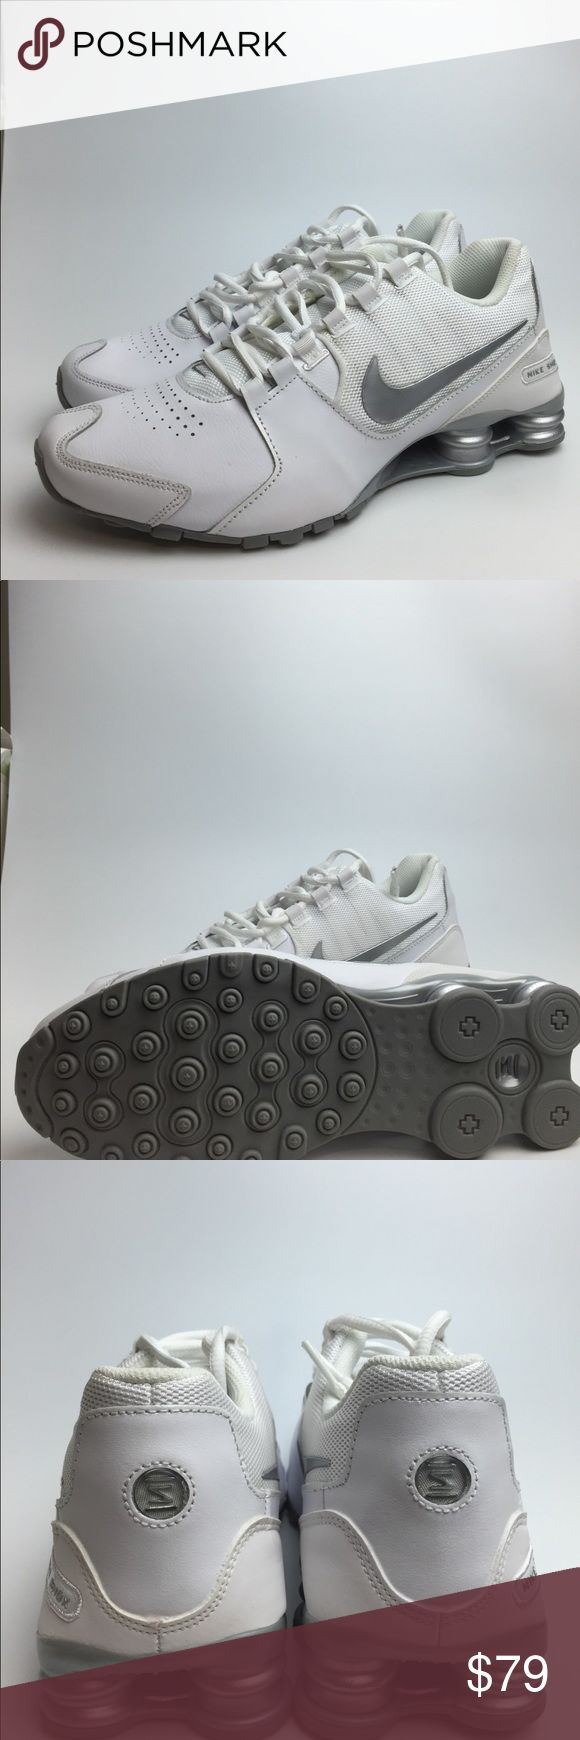 Mens Nike shoes NZ Brand new Nike Shoes Sneakers